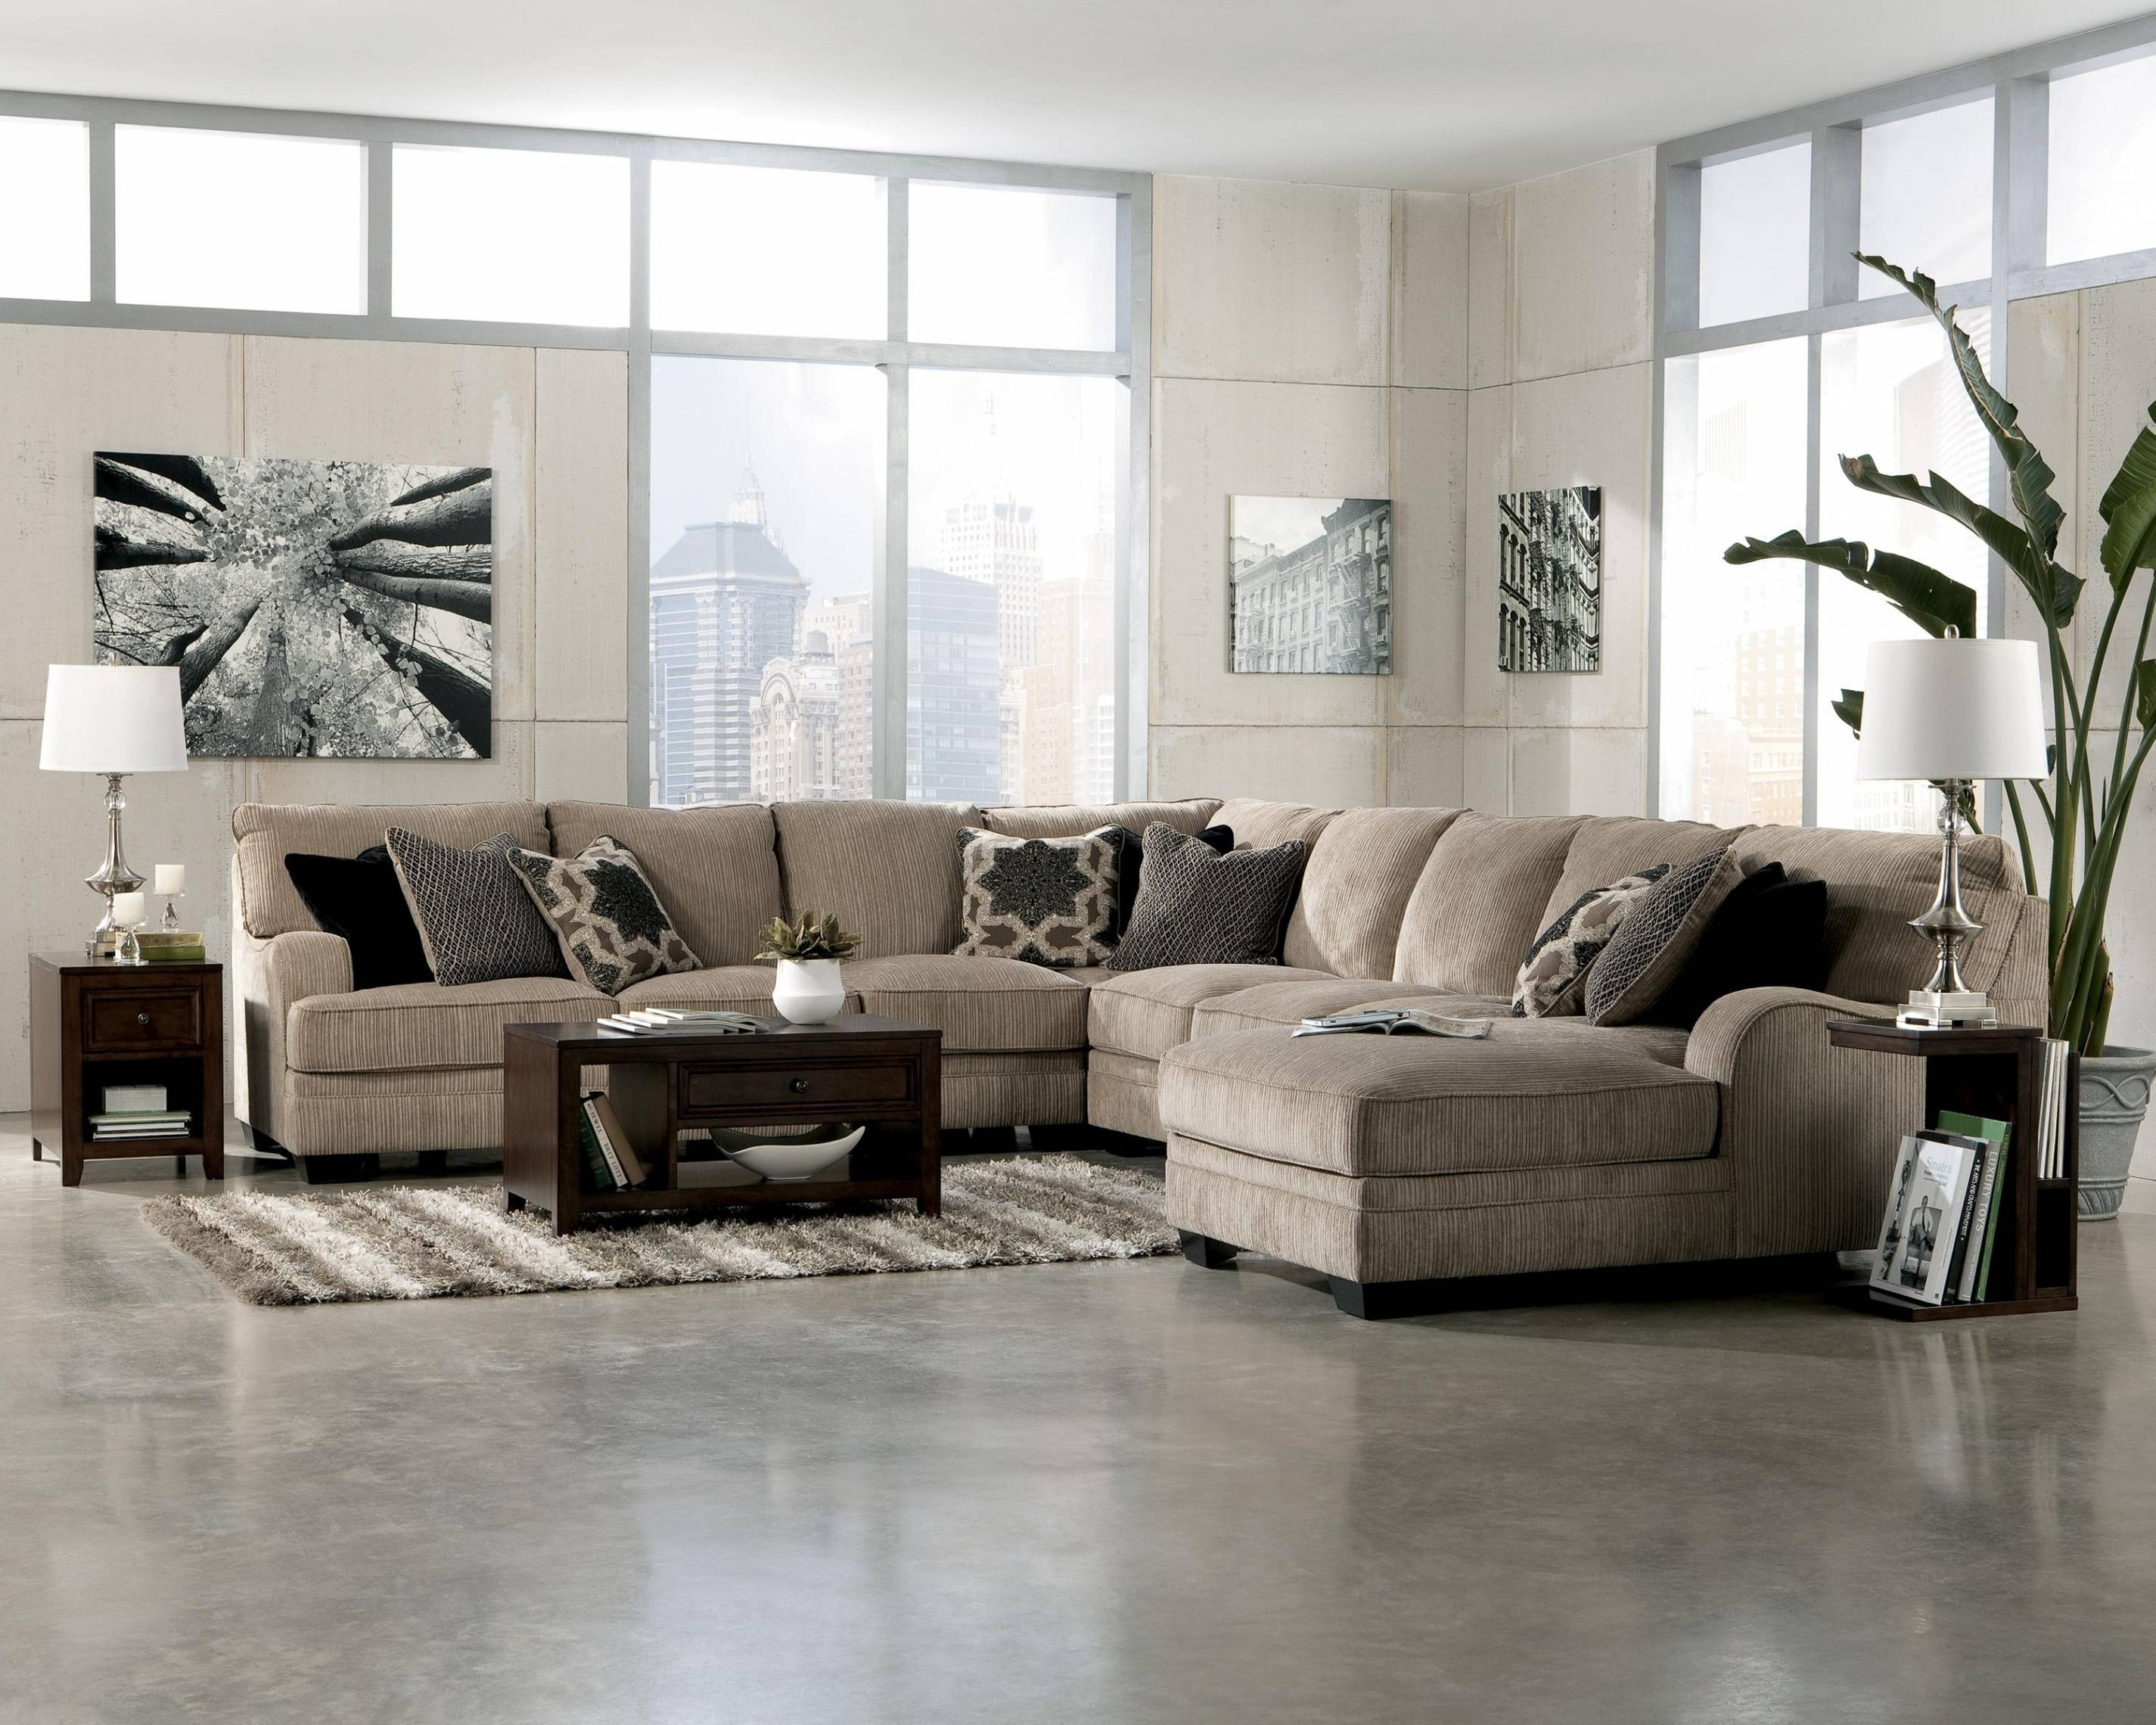 Furniture: Small Sectional Sofas For Small Spaces | Craigslist with Craigslist Sectional Sofa (Image 16 of 30)